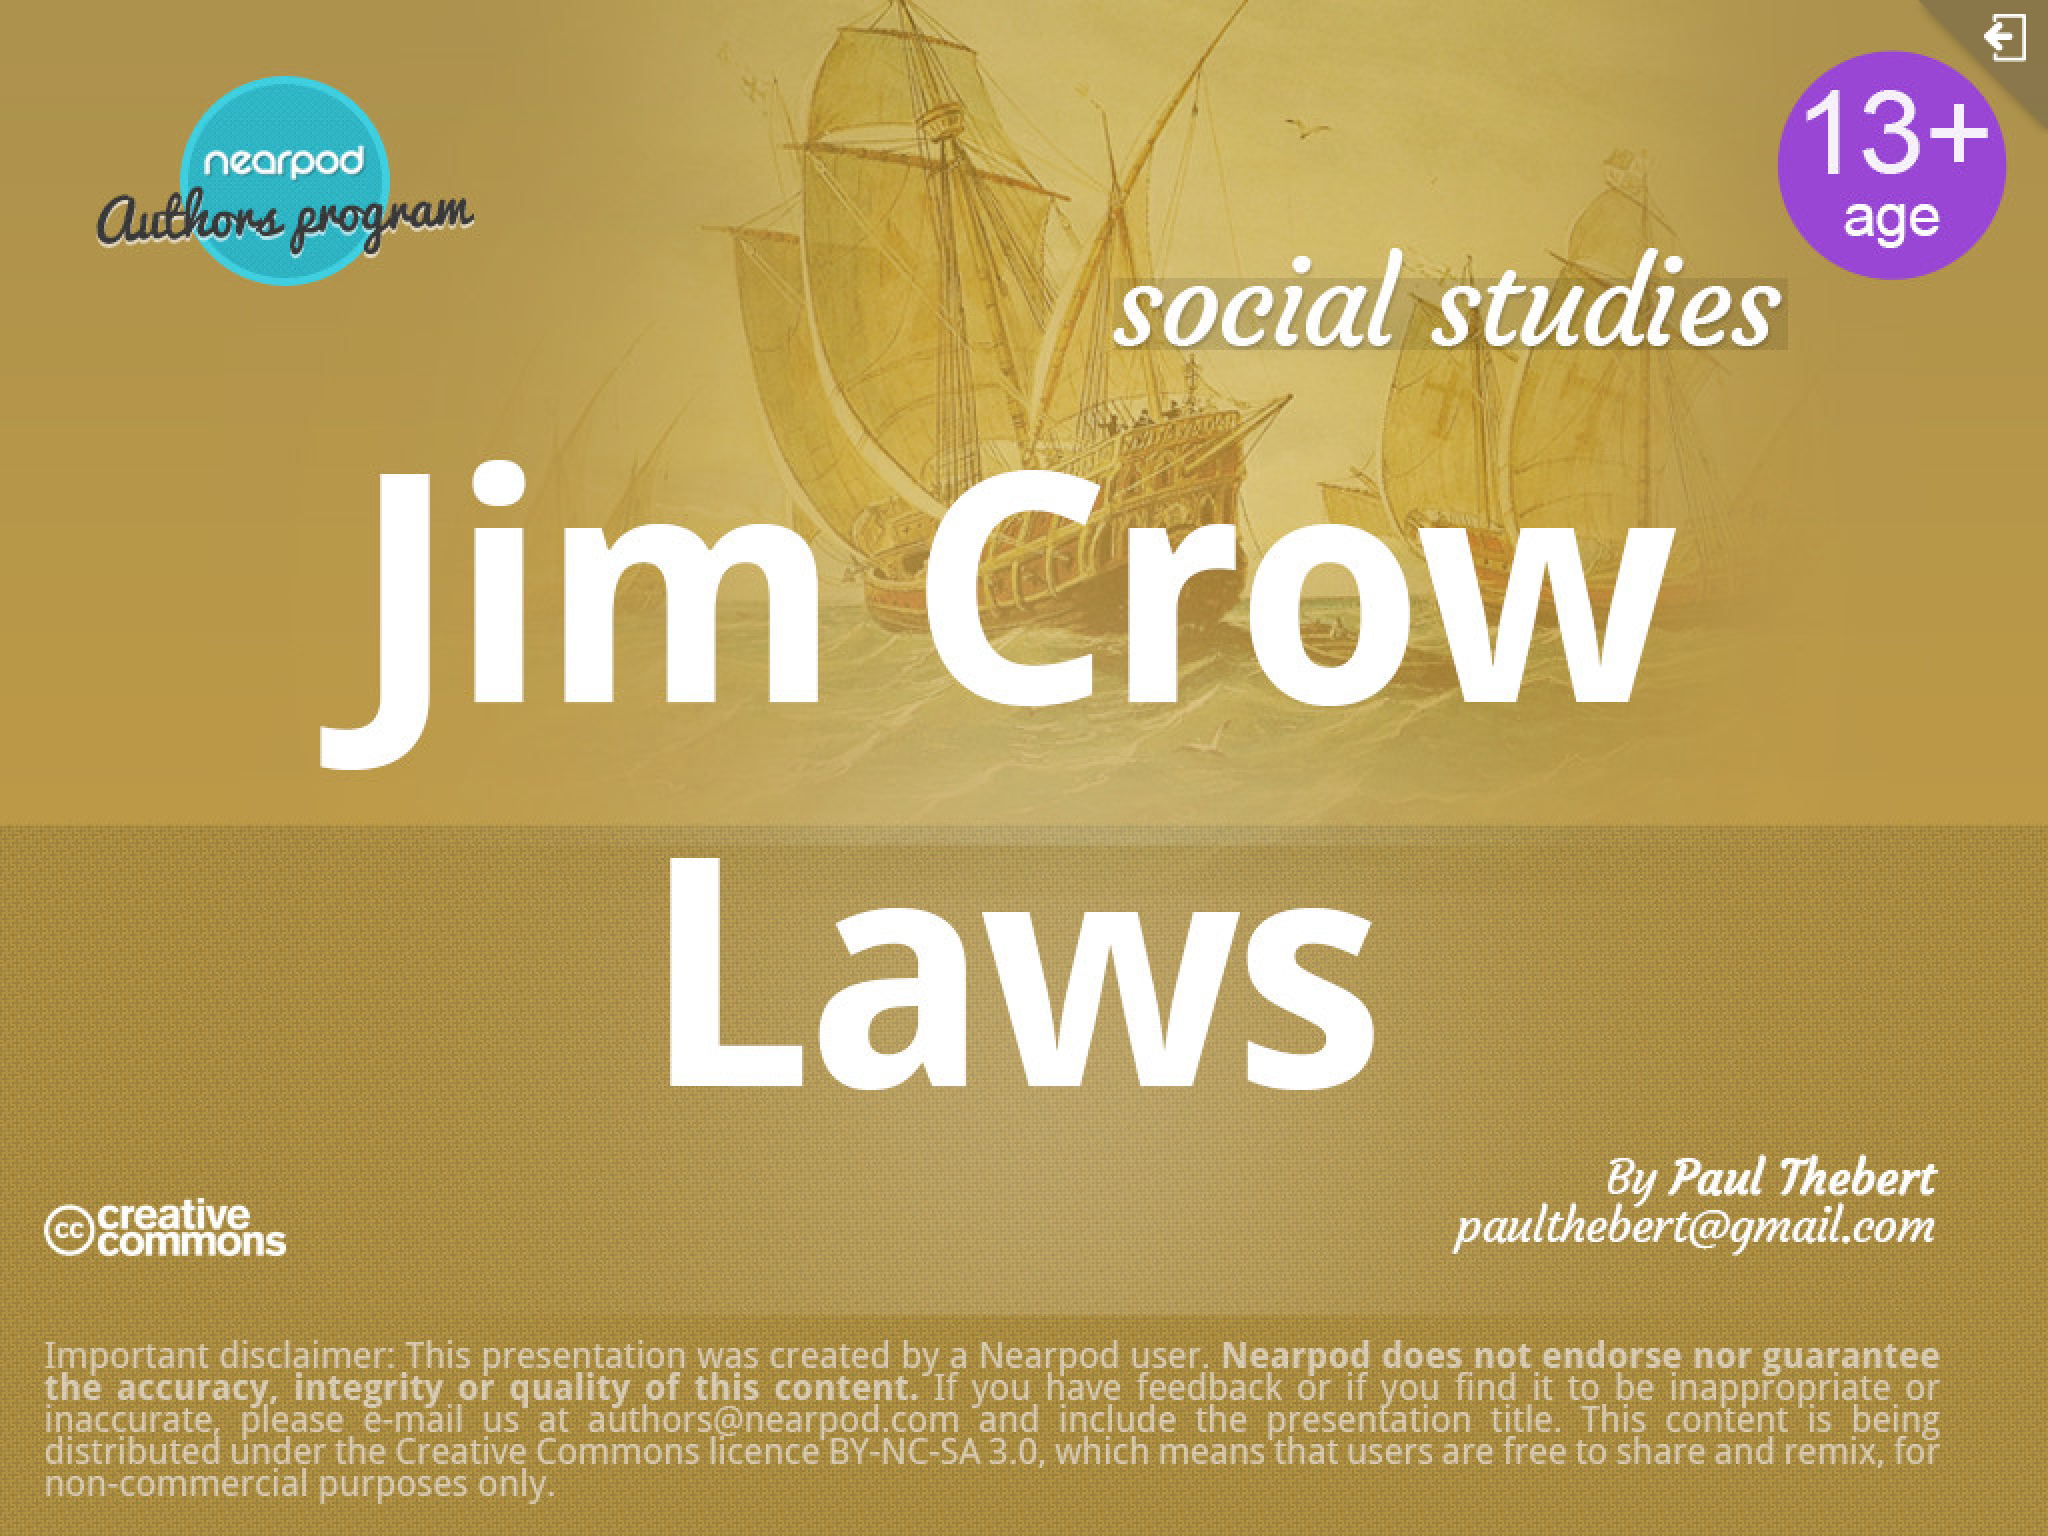 jim crow laws essay best images about american history jim crow  best images about american history jim crow laws 17 best images about american history jim crow segregation essay